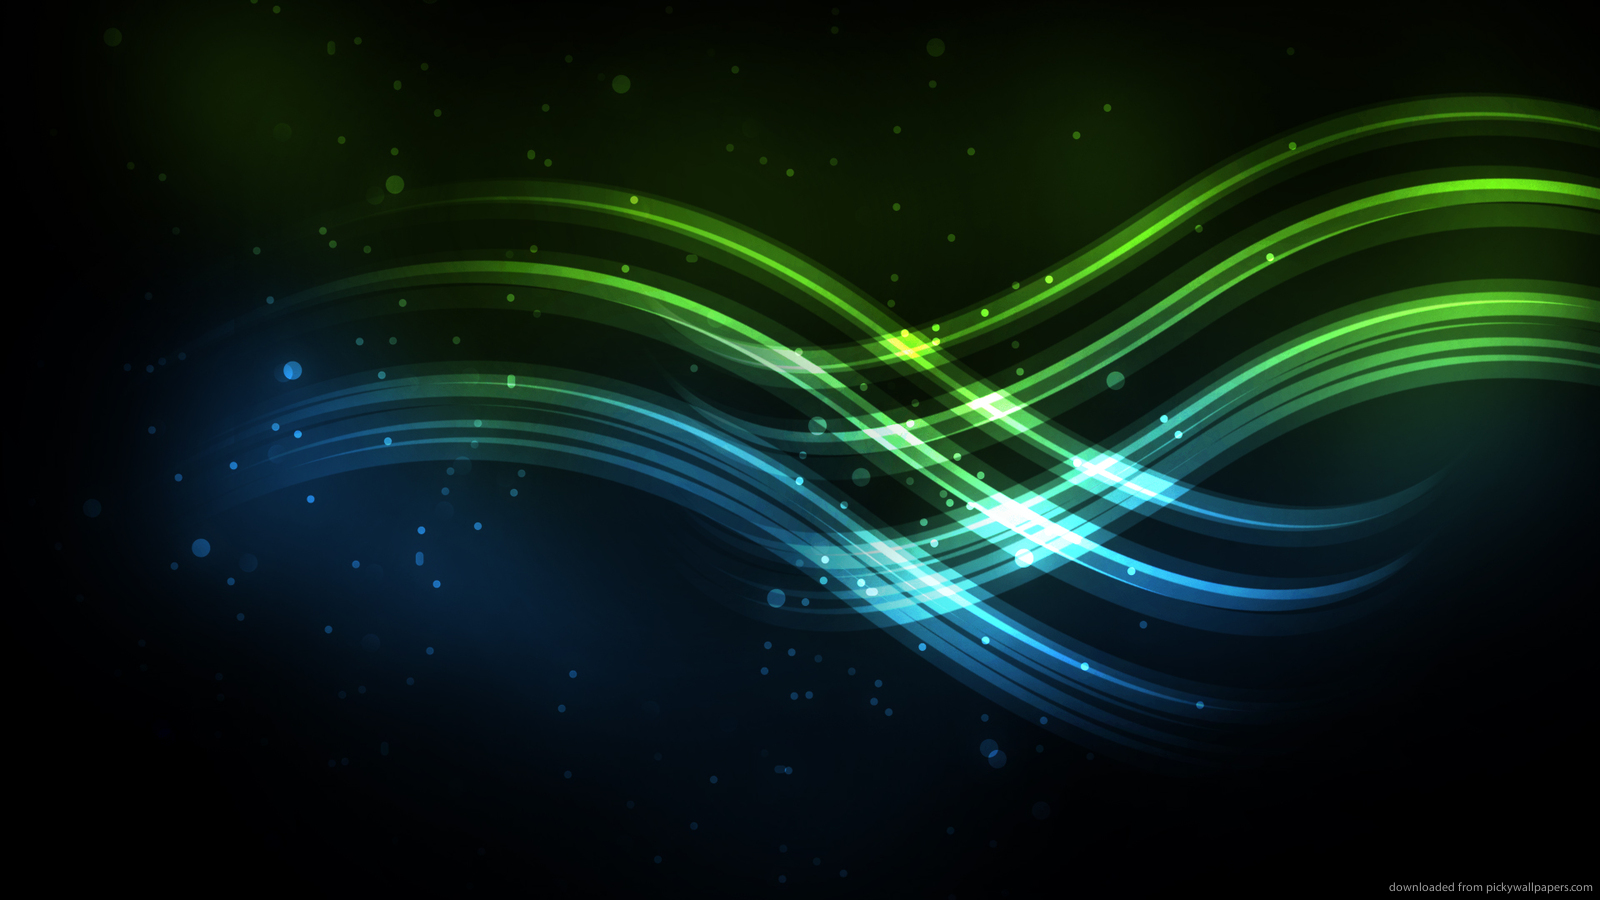 Download 1600x900 Blue And Green Waves Wallpaper